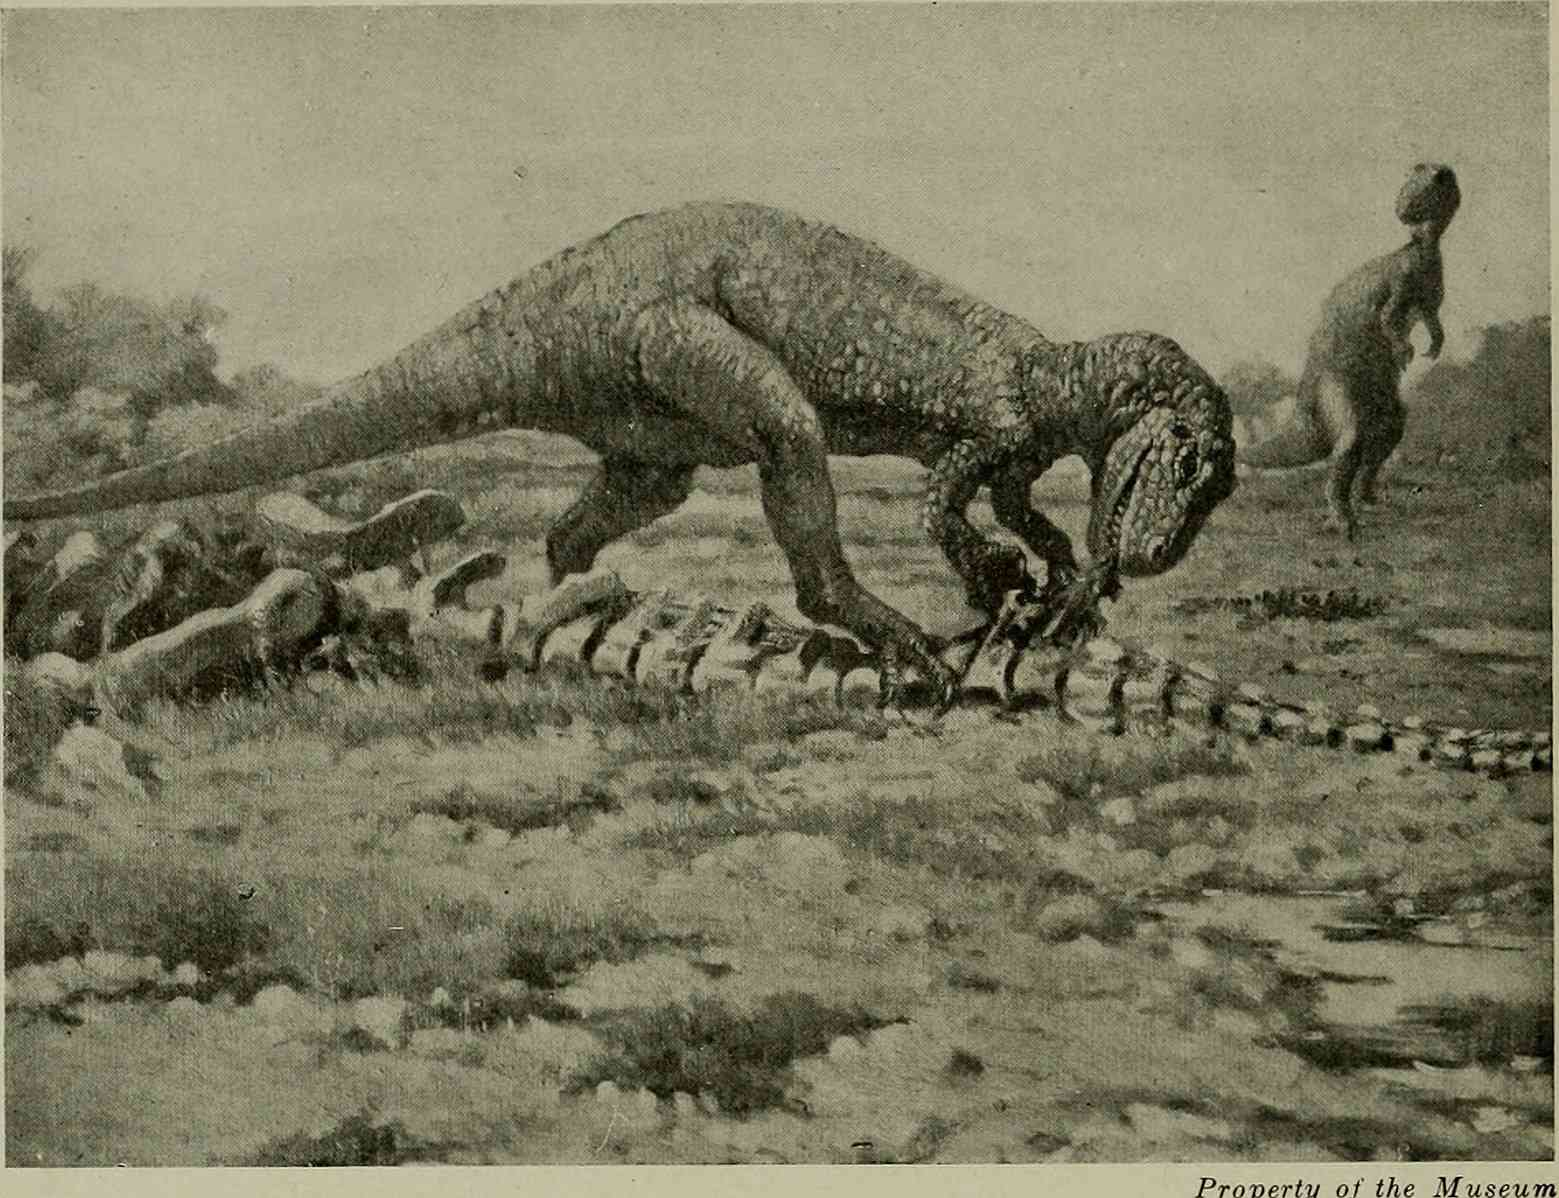 Early depiction of Allosaurus